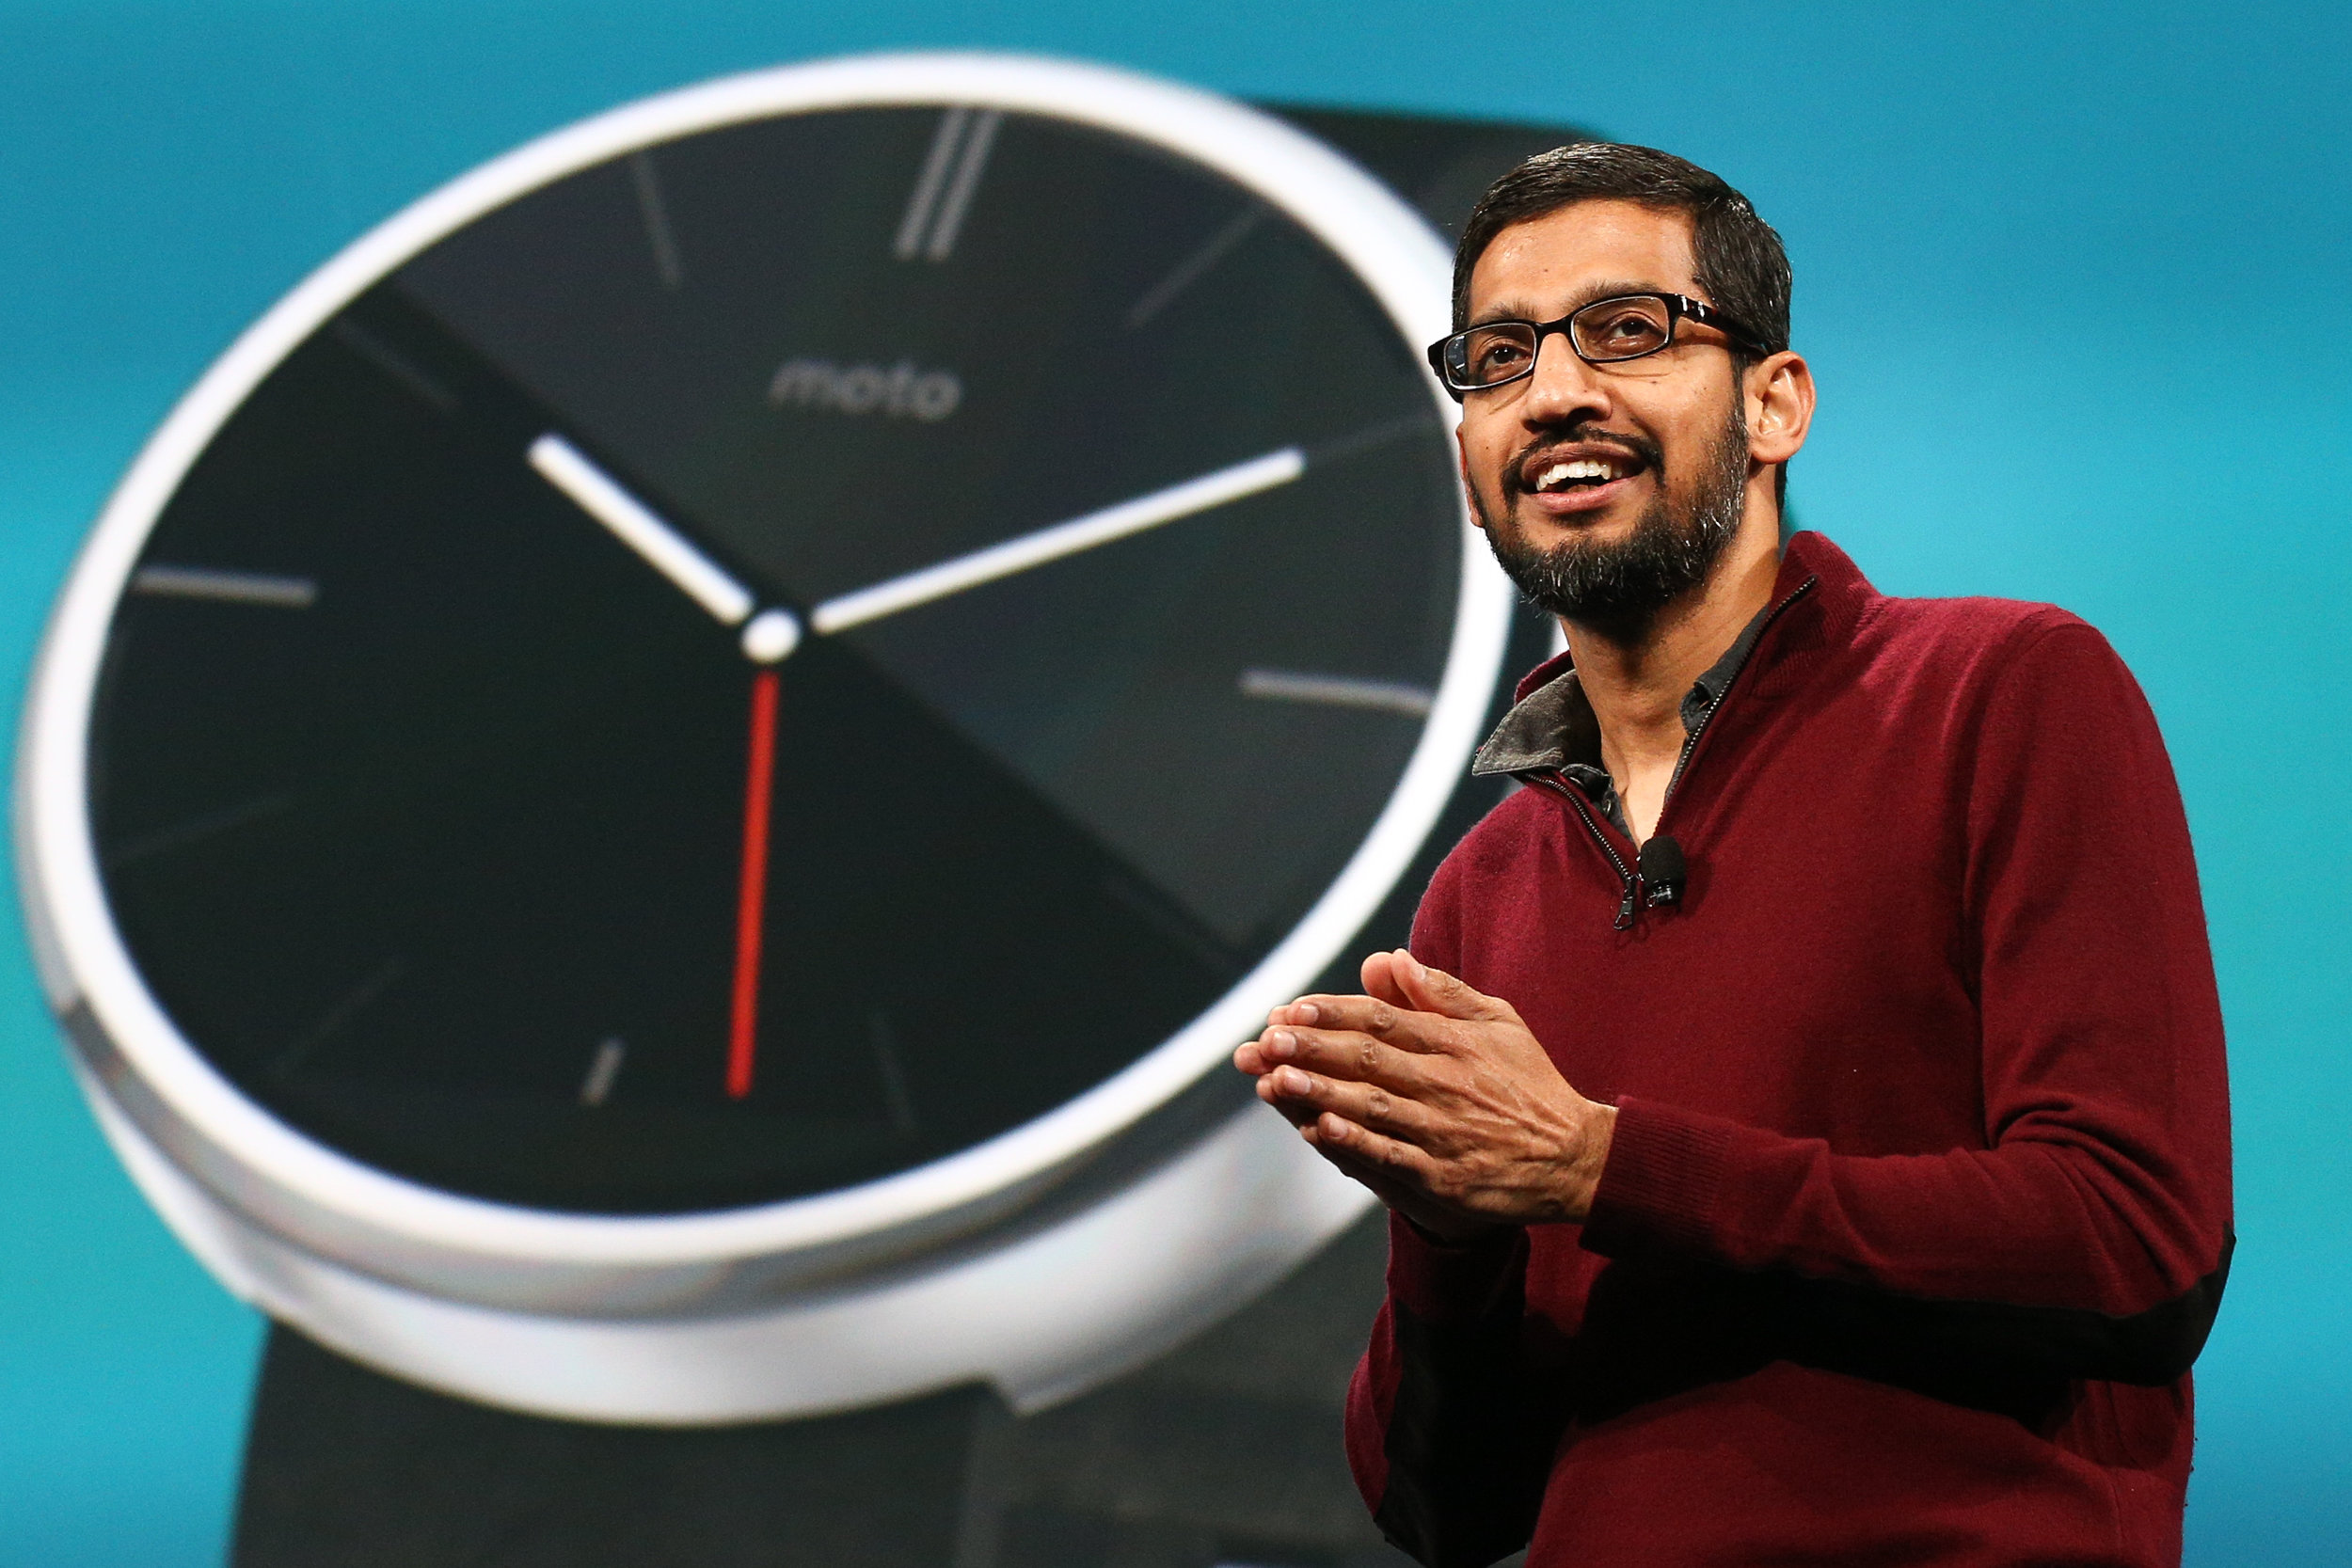 Sundar Pichai, Chief Executive Officer of Google Inc., speaks during the keynote at the Google I/O developers conference in San Francisco, California